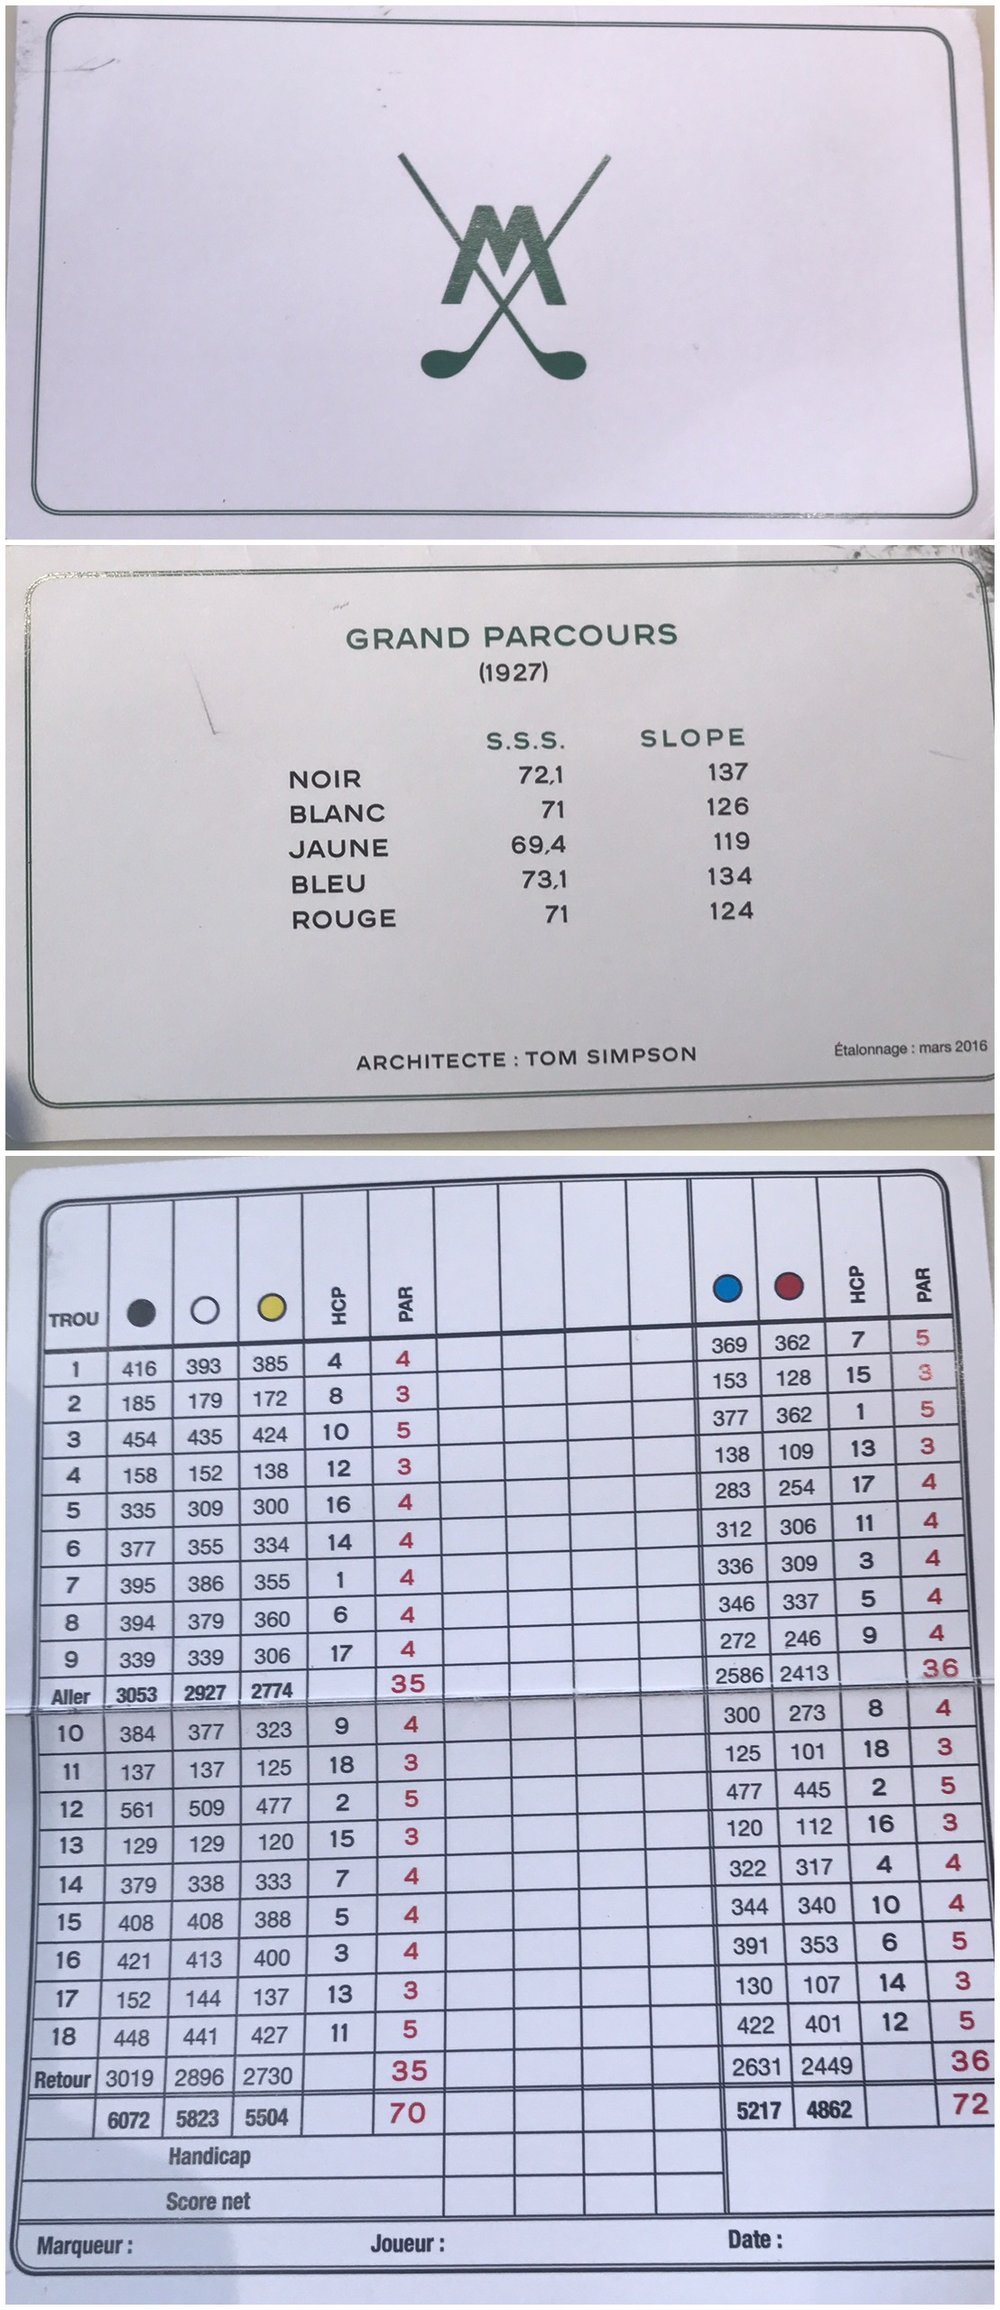 The Scorecard for Morfontaine Golf Course designed by Tom Simpson